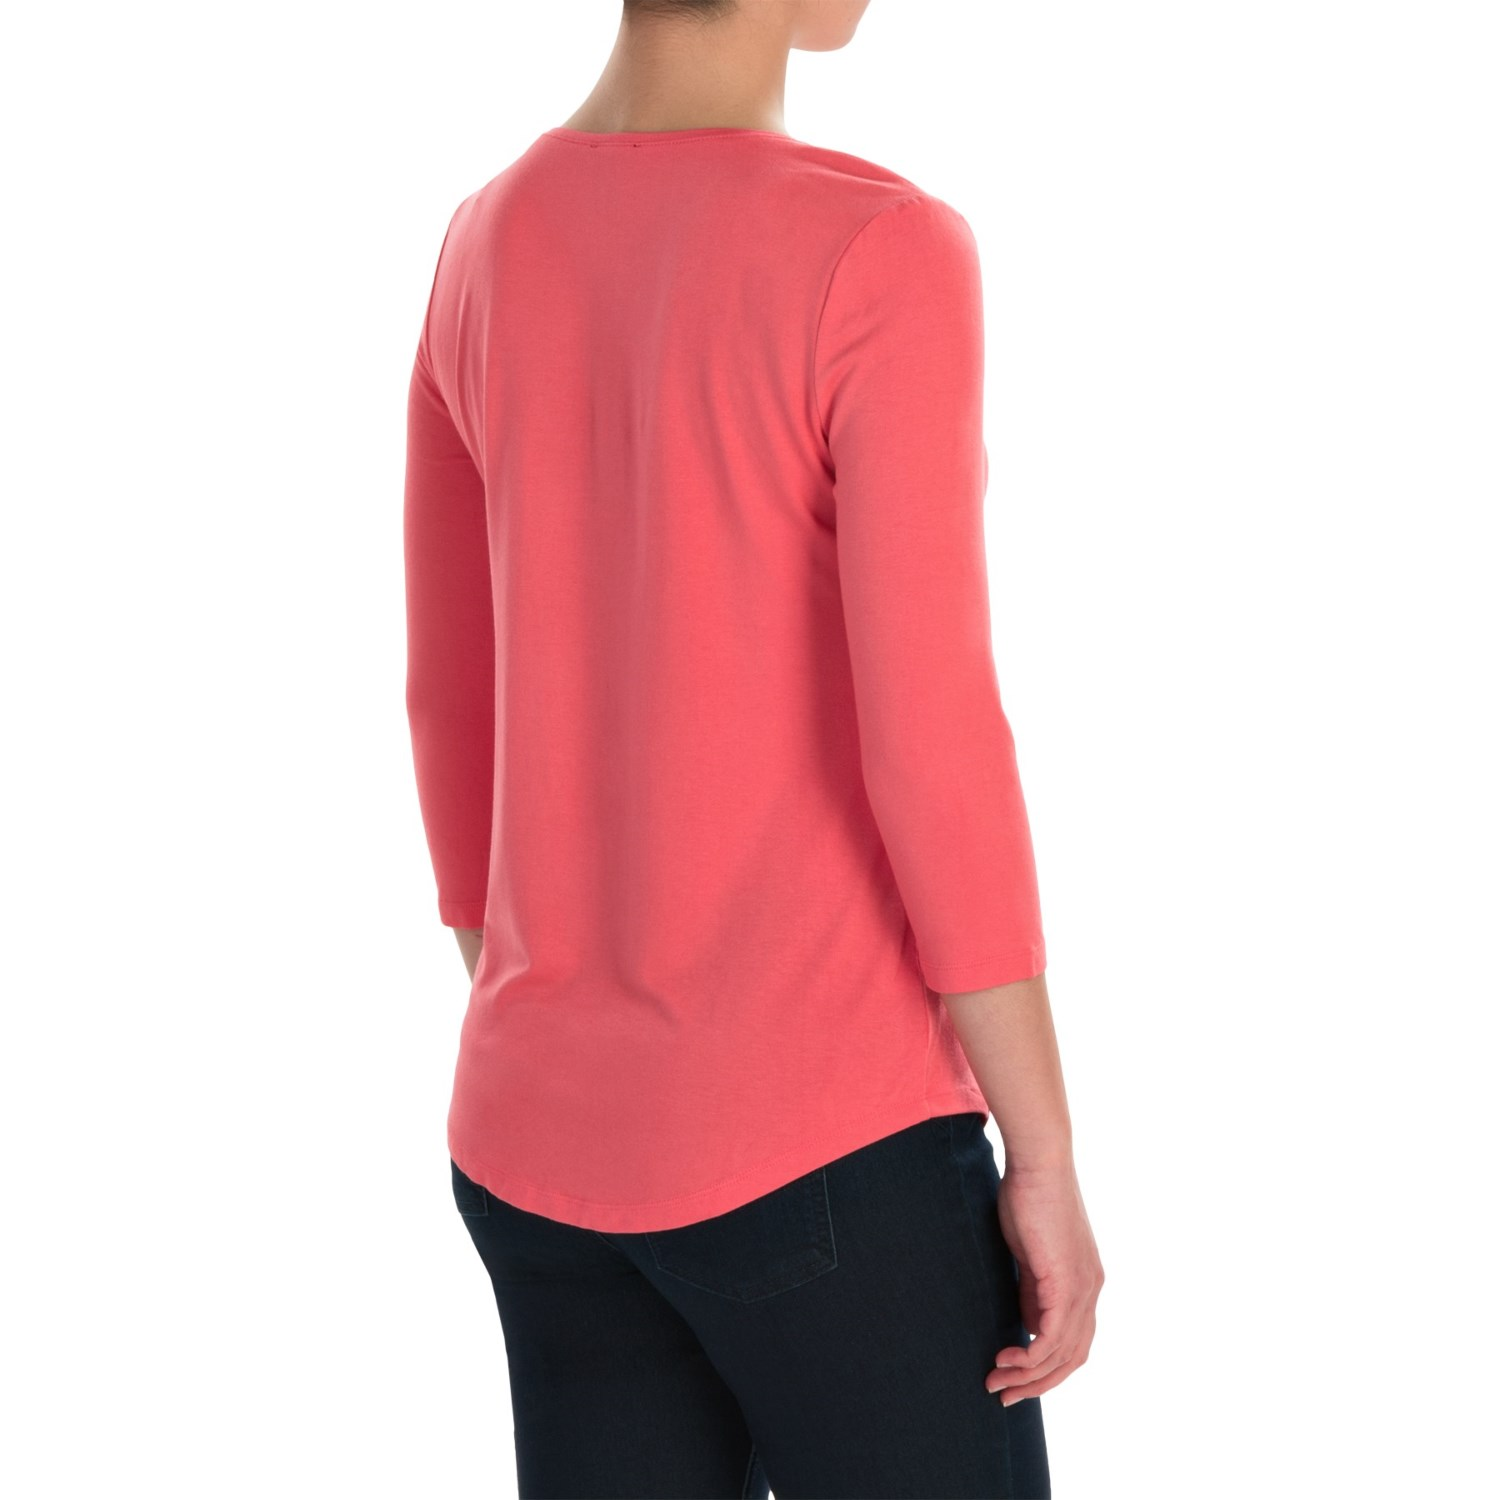 Ballet neck knit shirt for women save 74 for Ballet neck tee shirts